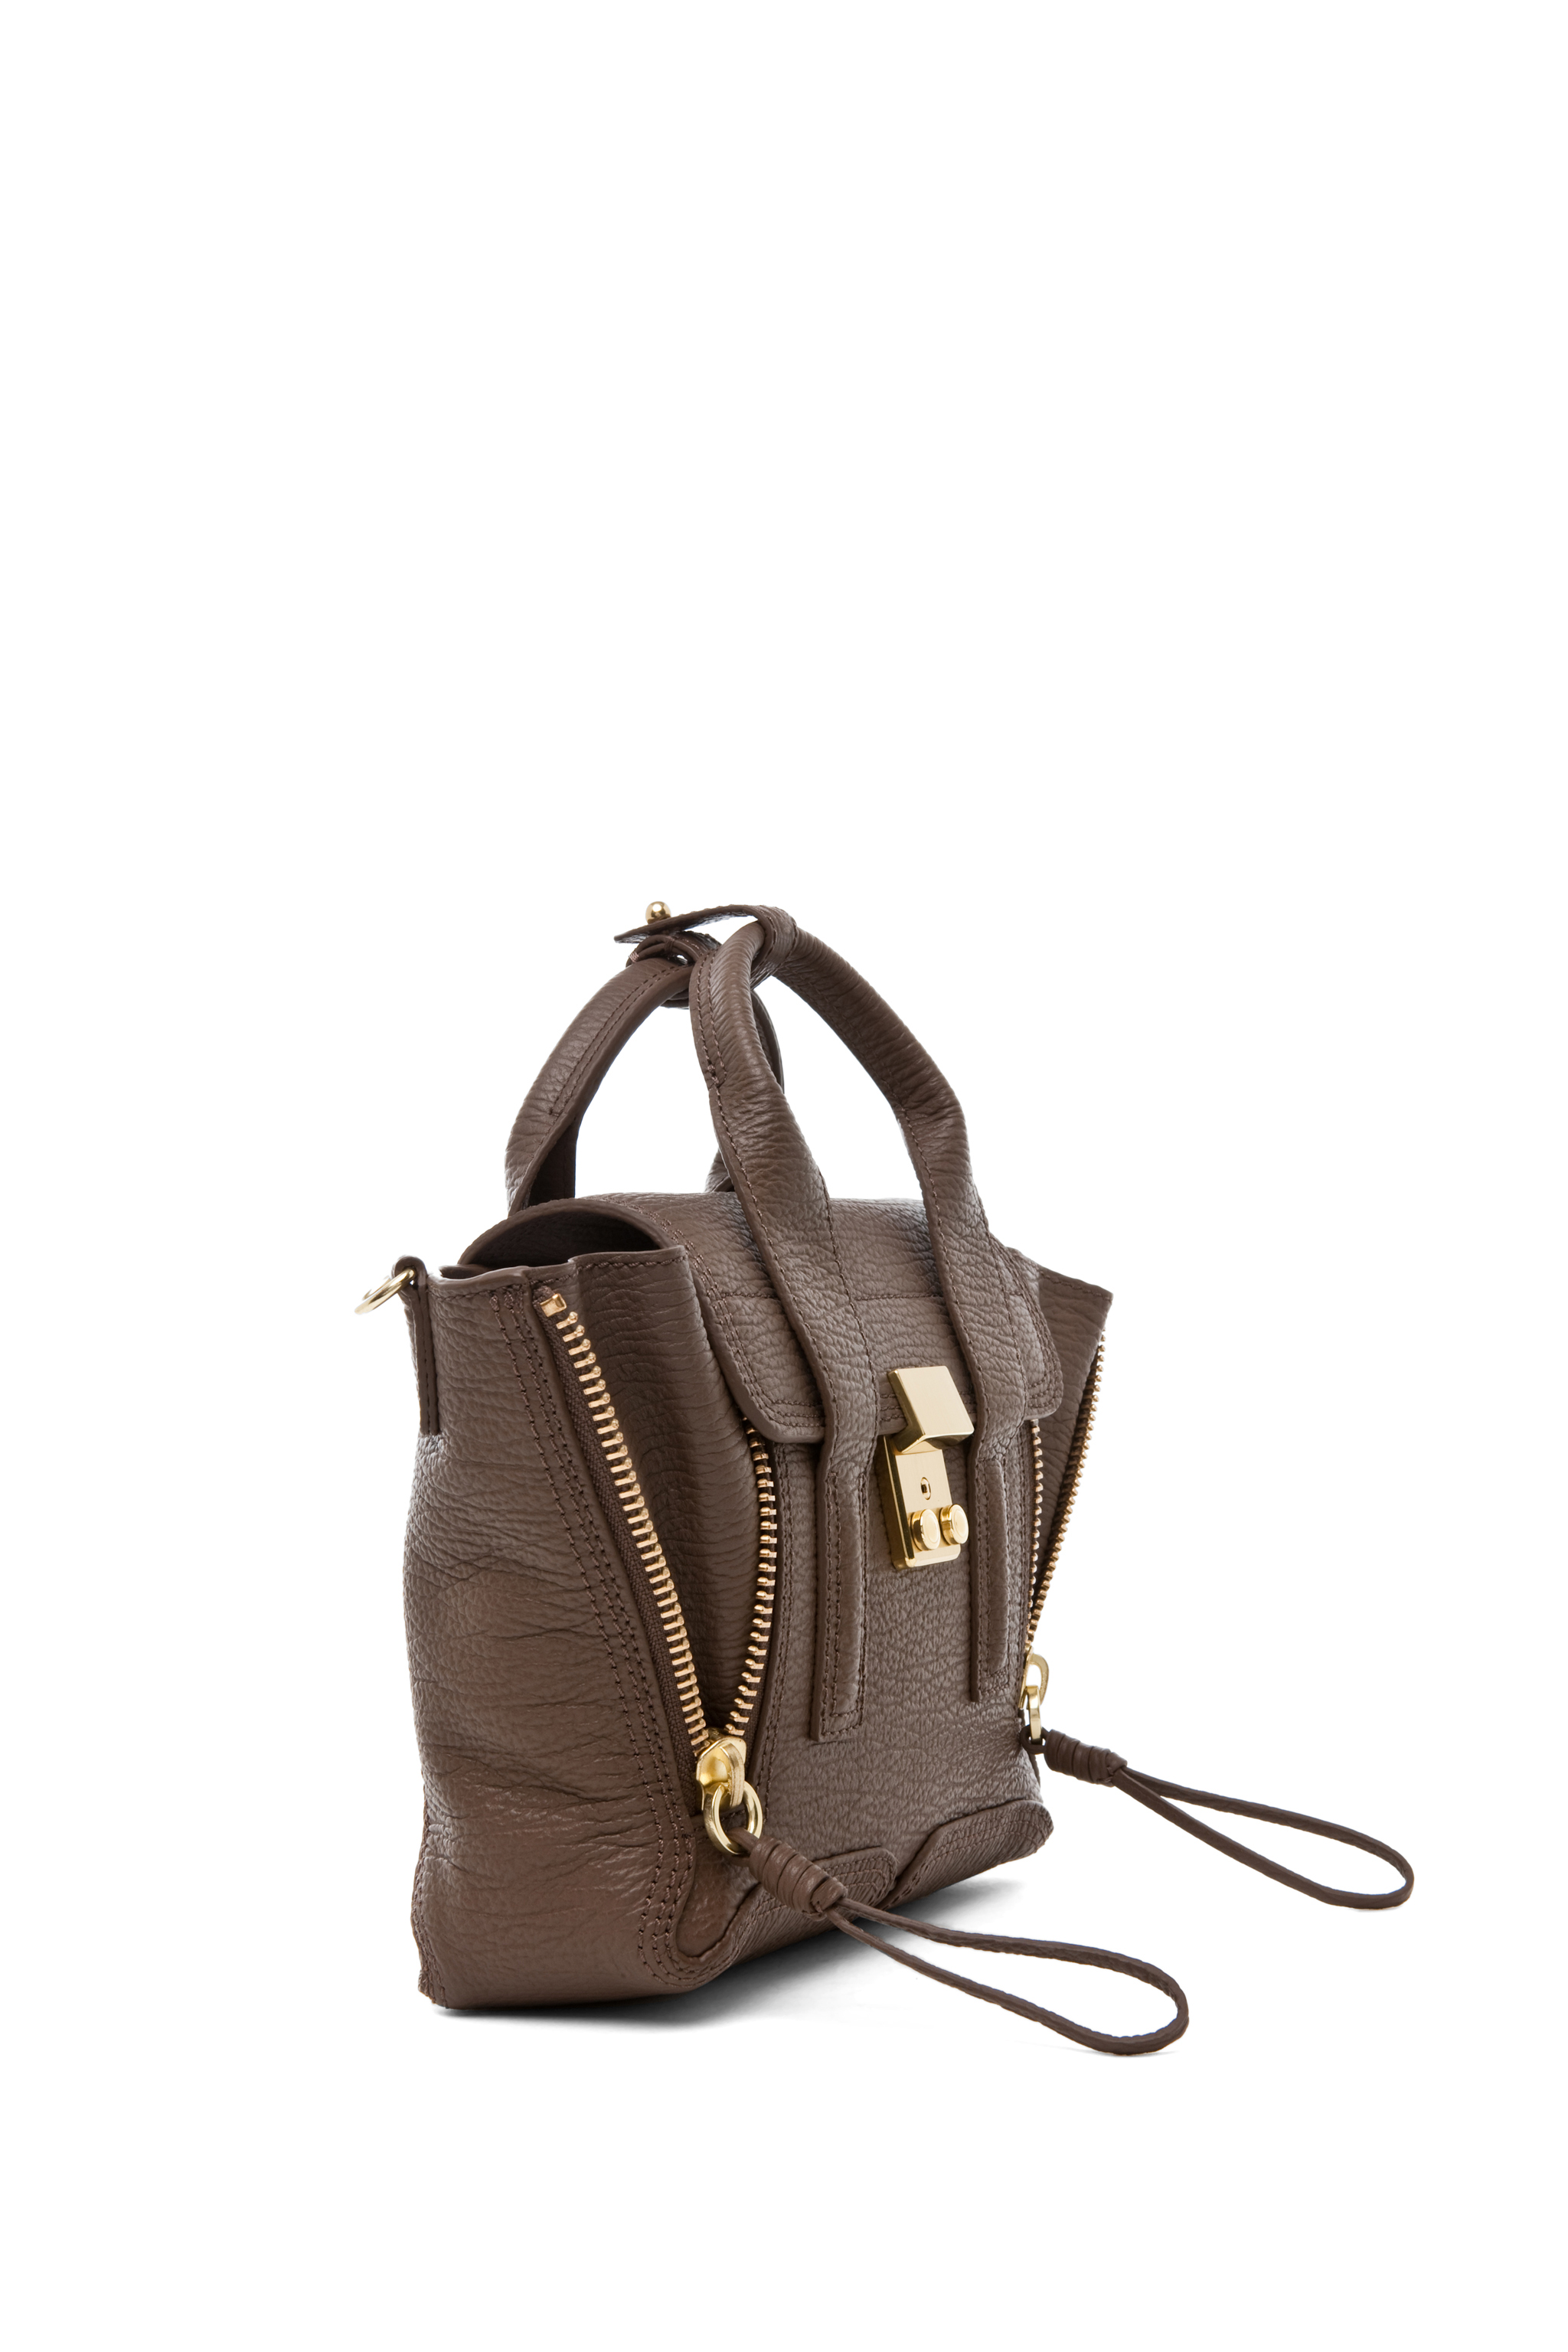 3.1 phillip lim|Mini Pashli Satchel in Taupe